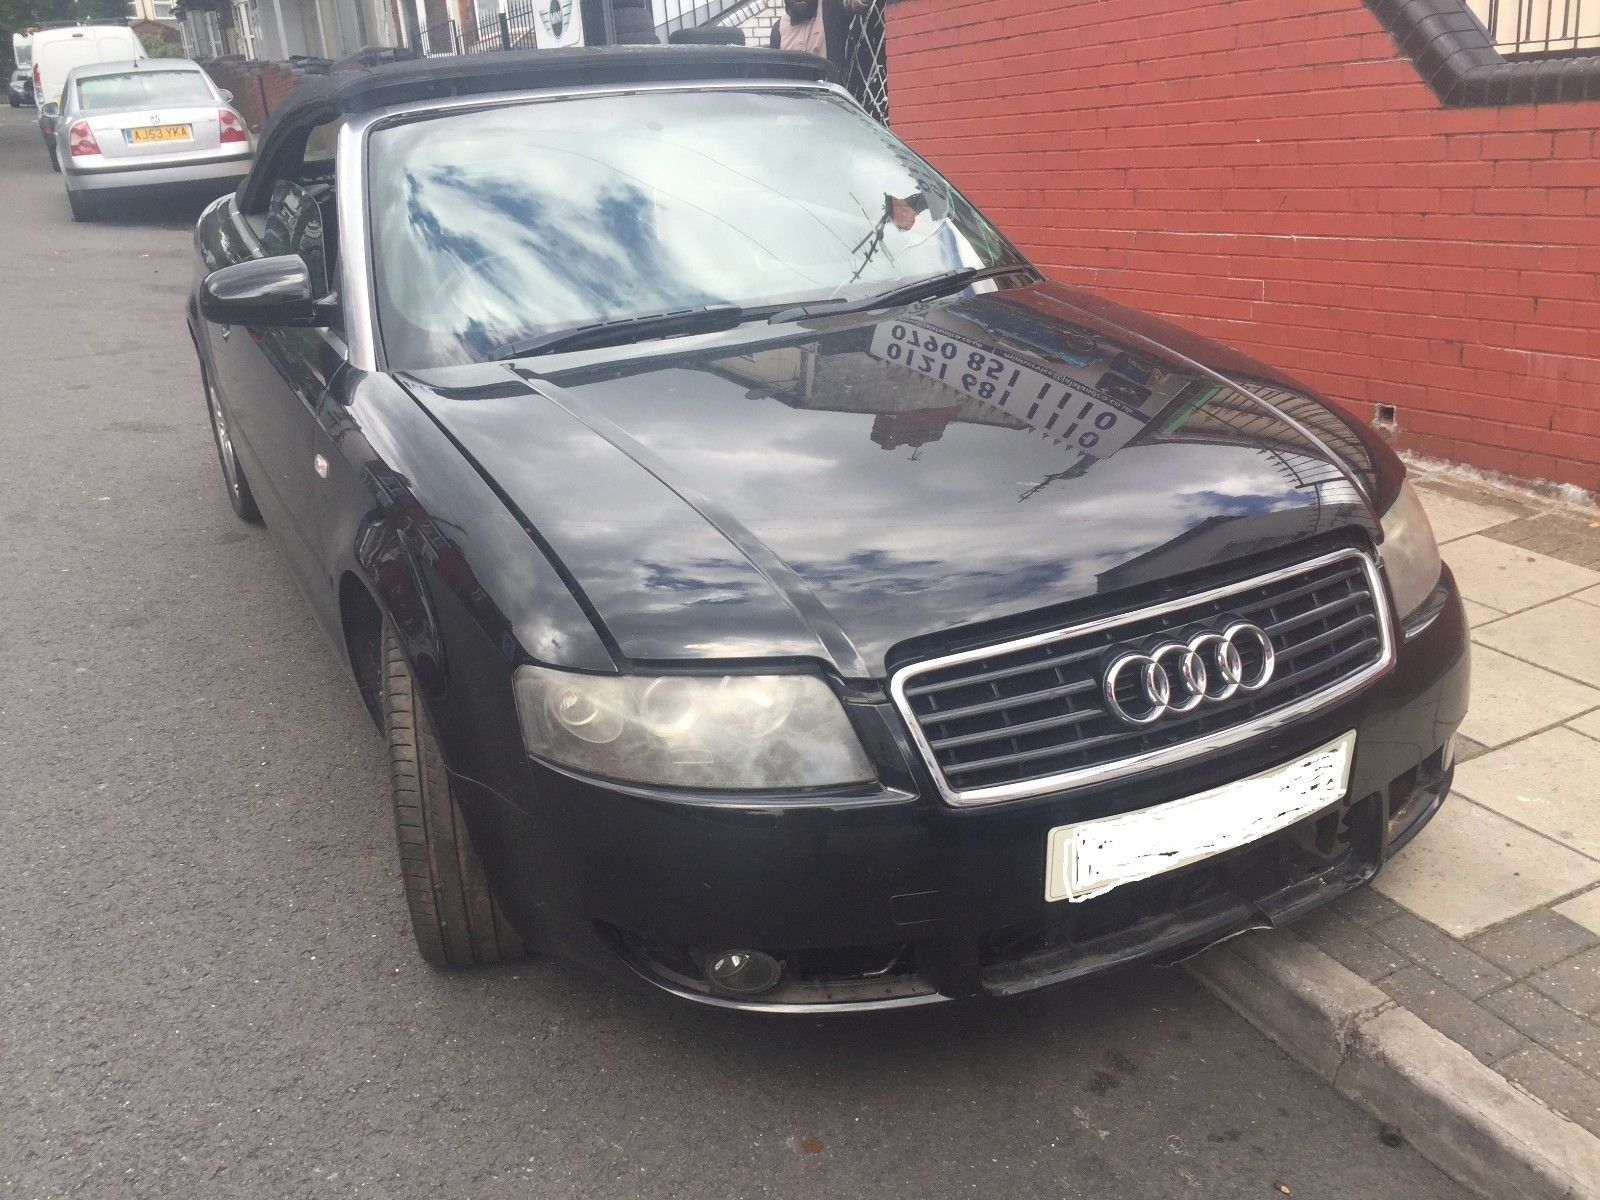 audi a4 b6 v6 2 4 2005 convertible black gbl 5 speed manual gearbox rh abscity co uk Audi A4 6-Speed Manual Audi A4 Owner's Manual